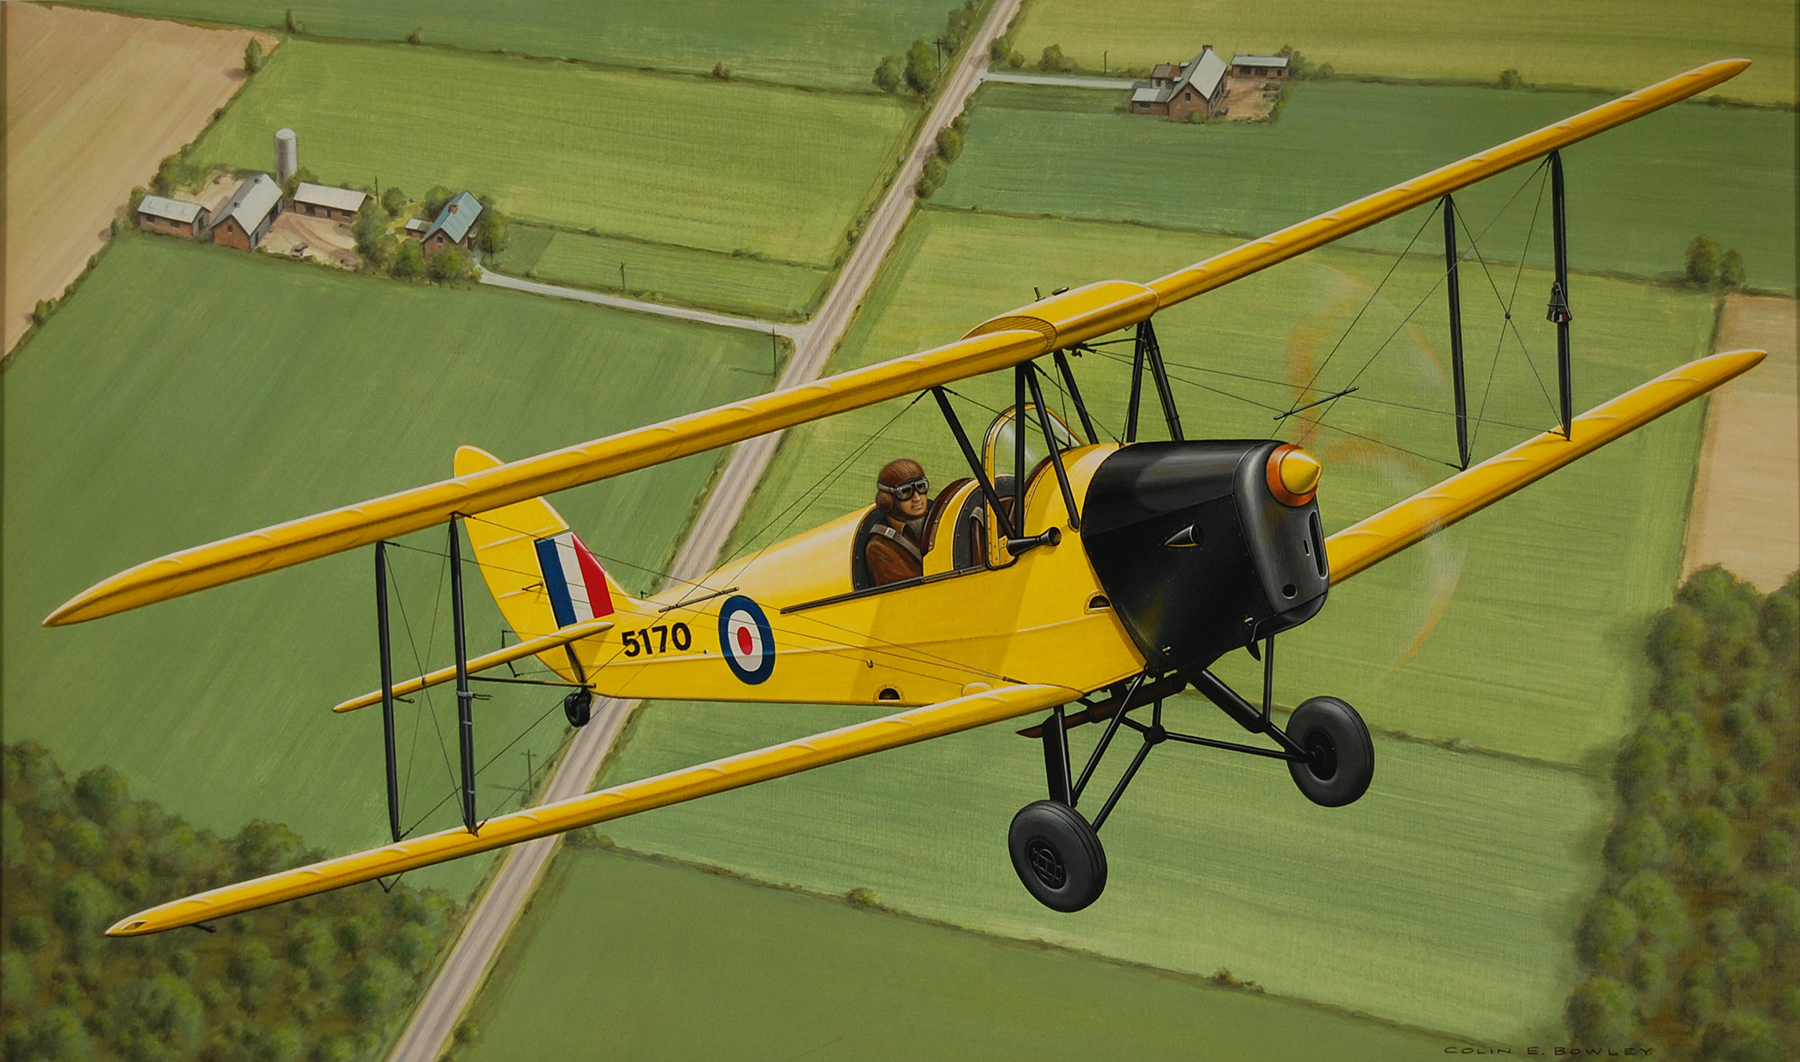 """The deHavilland DH82A Tiger Moth"" by Colin Bowley"